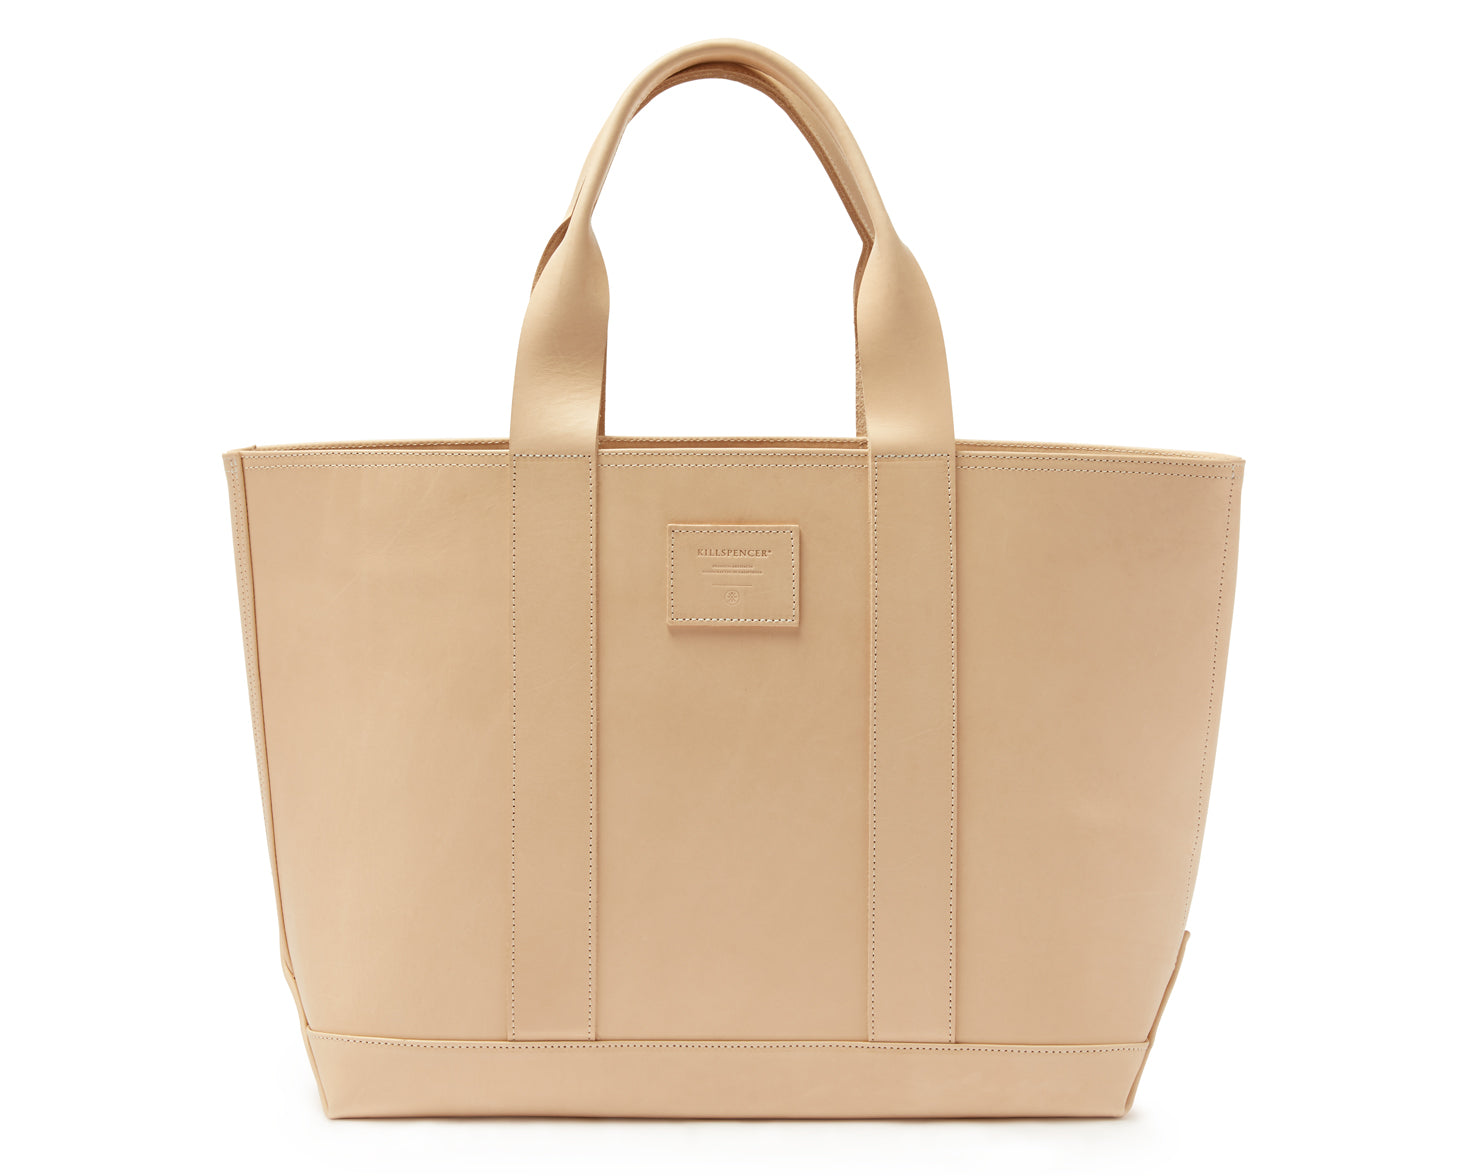 MEGA TOTE | KILLSPENCER® - Natural Bullhide Leather